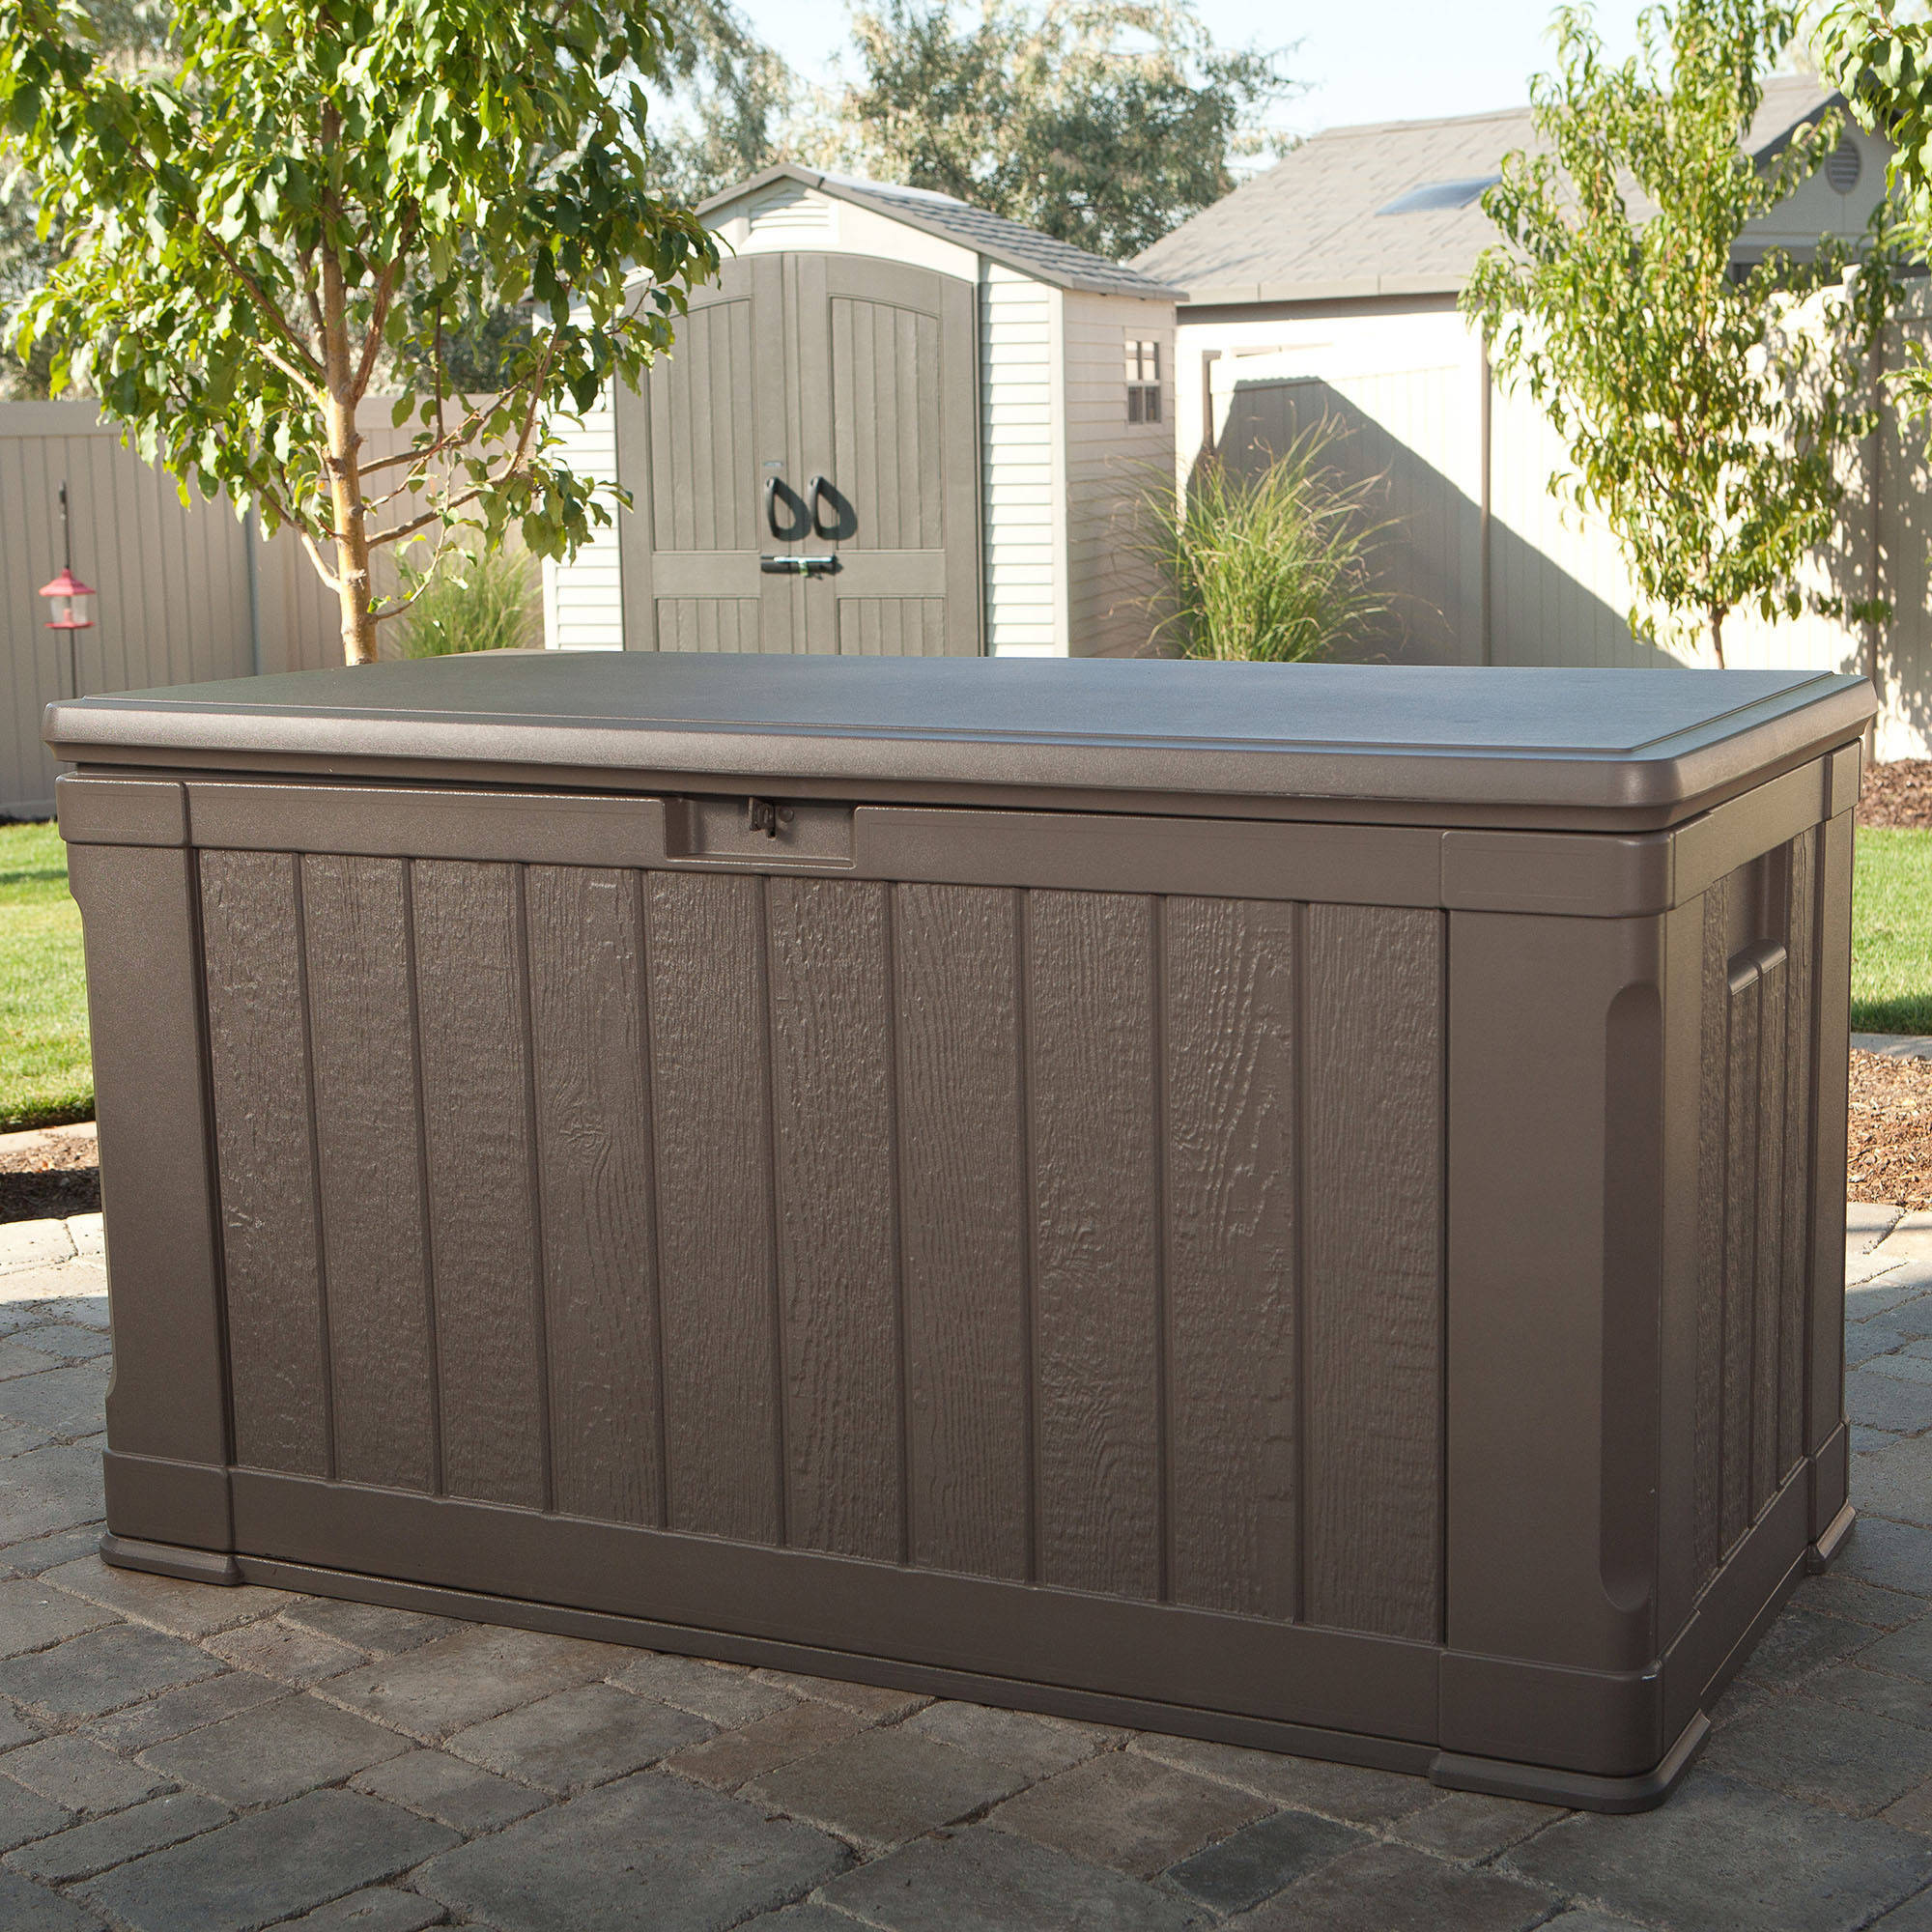 lifetime outdoor storage box 116 gallon 60089 walmartcom - Patio Storage Box